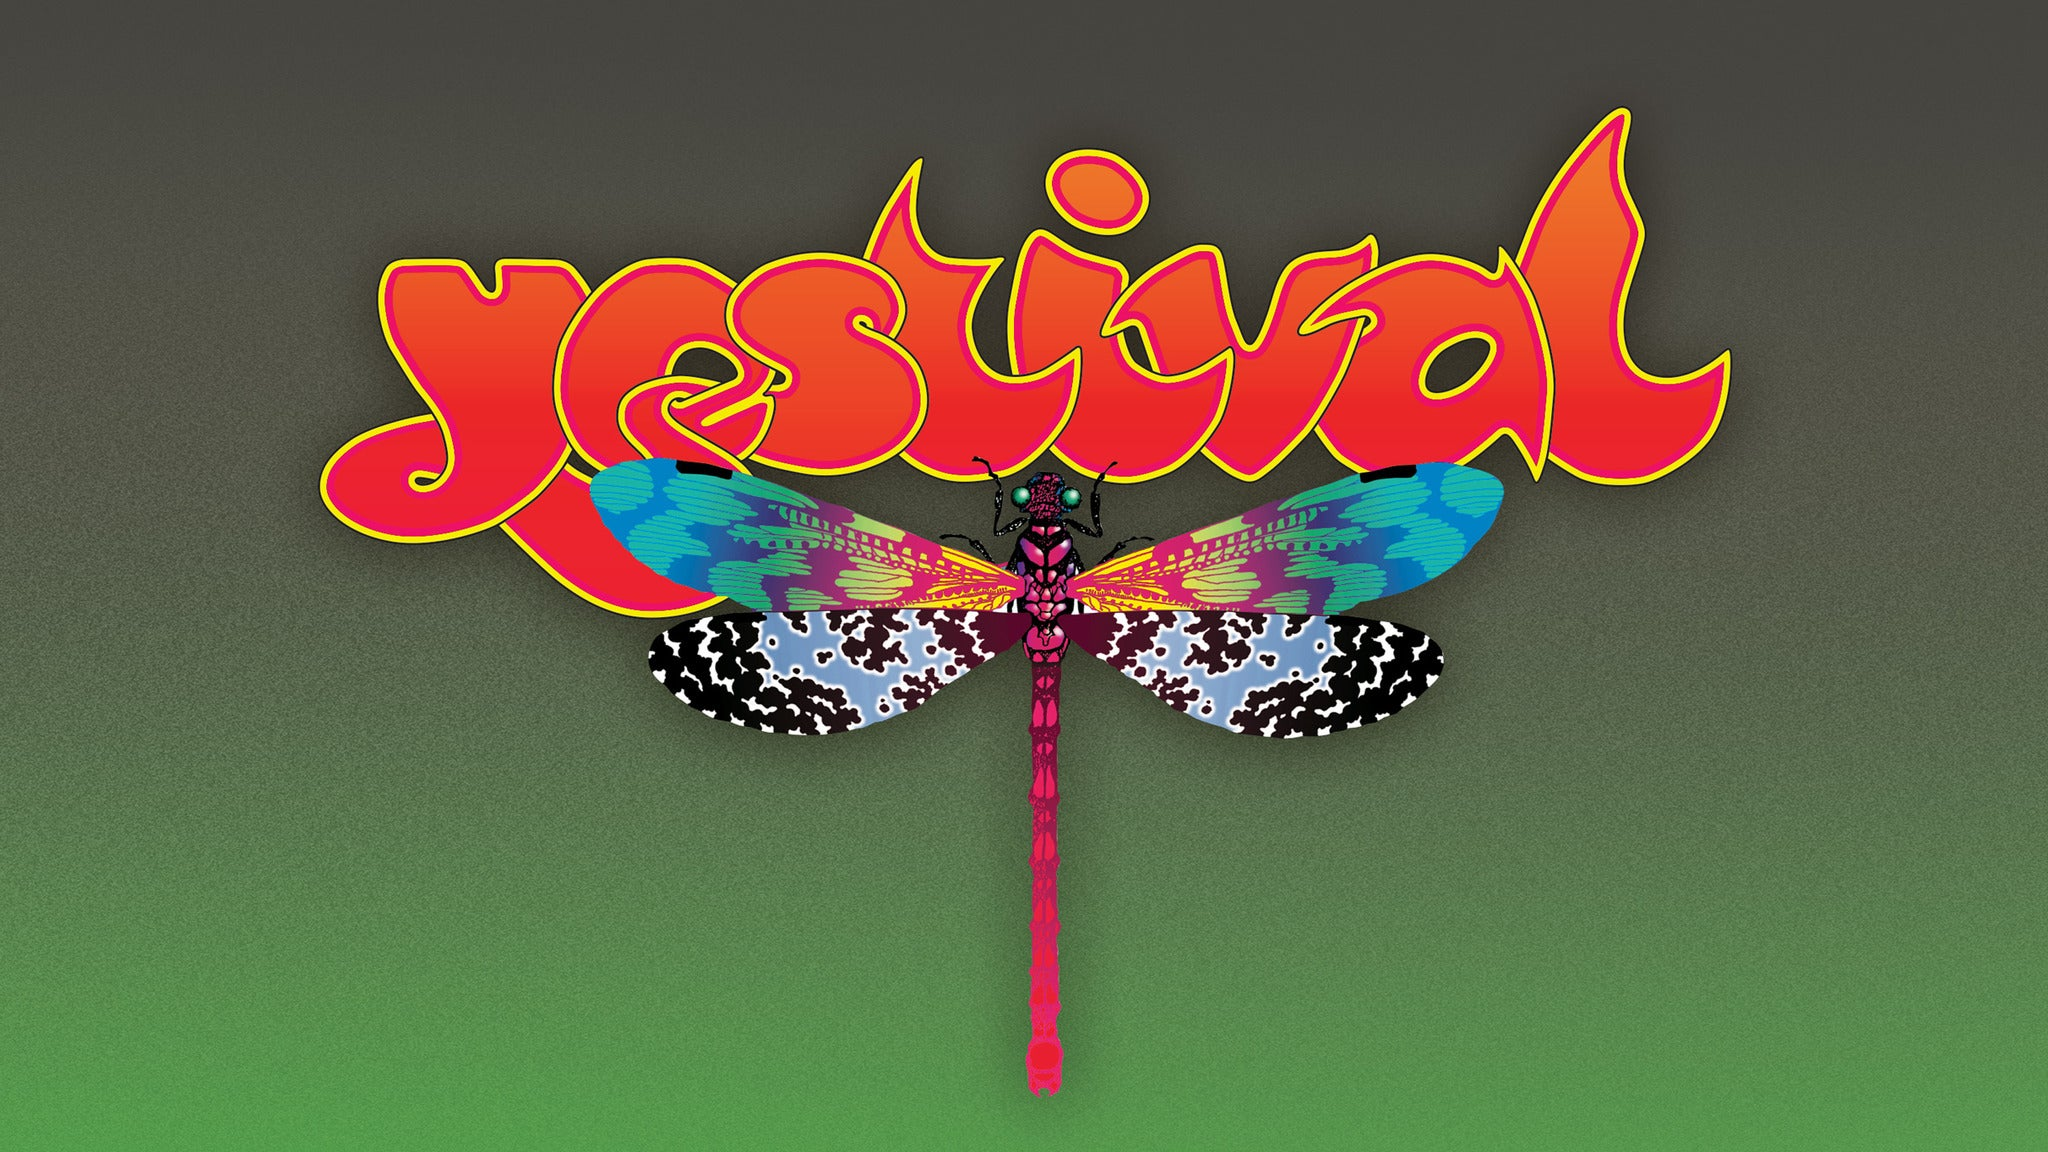 Yestival Tour at The Grand Theater at Foxwoods Resort Casino